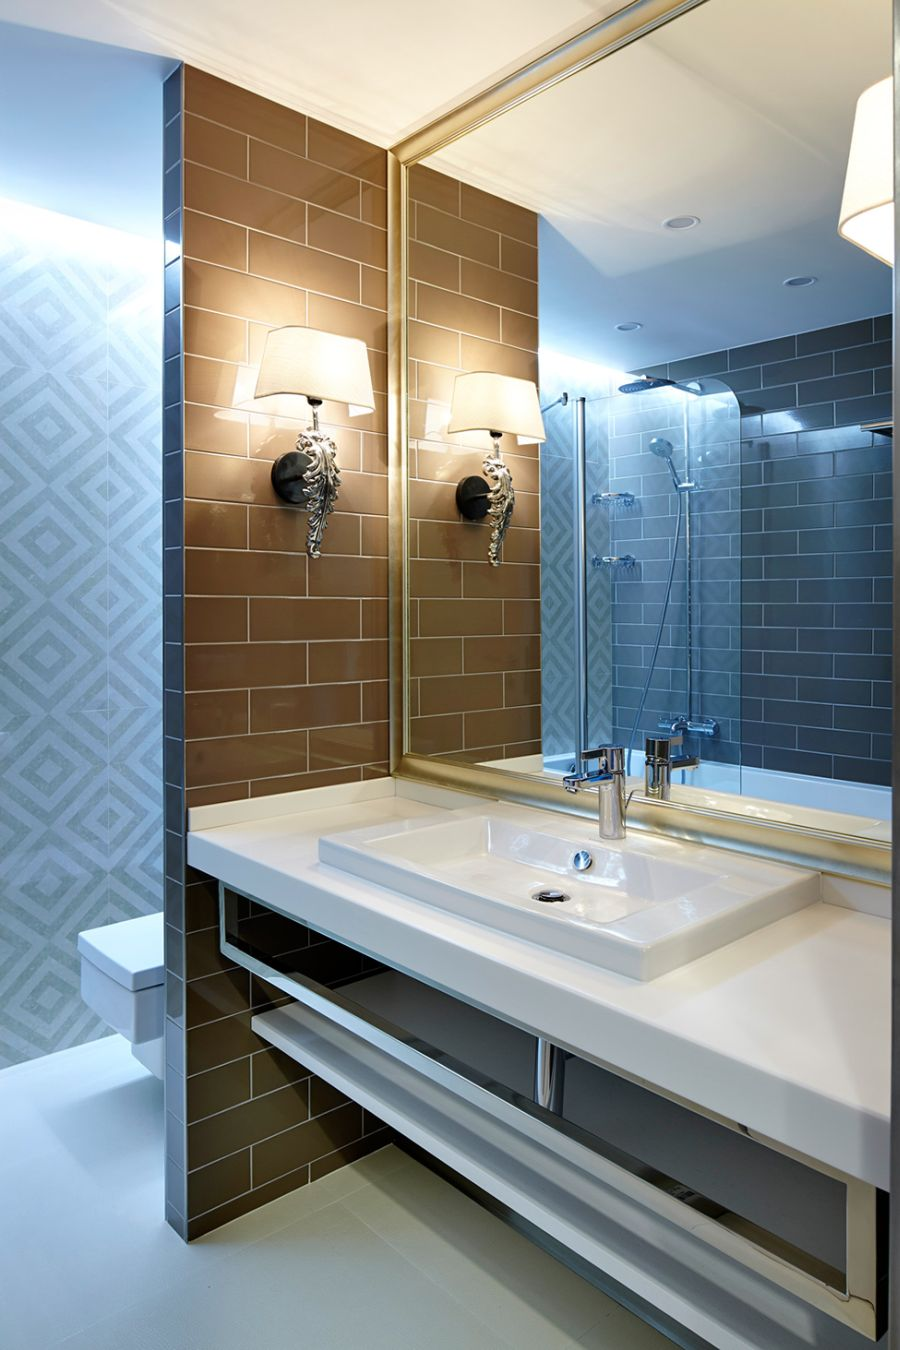 Modern bathroom design and lighting